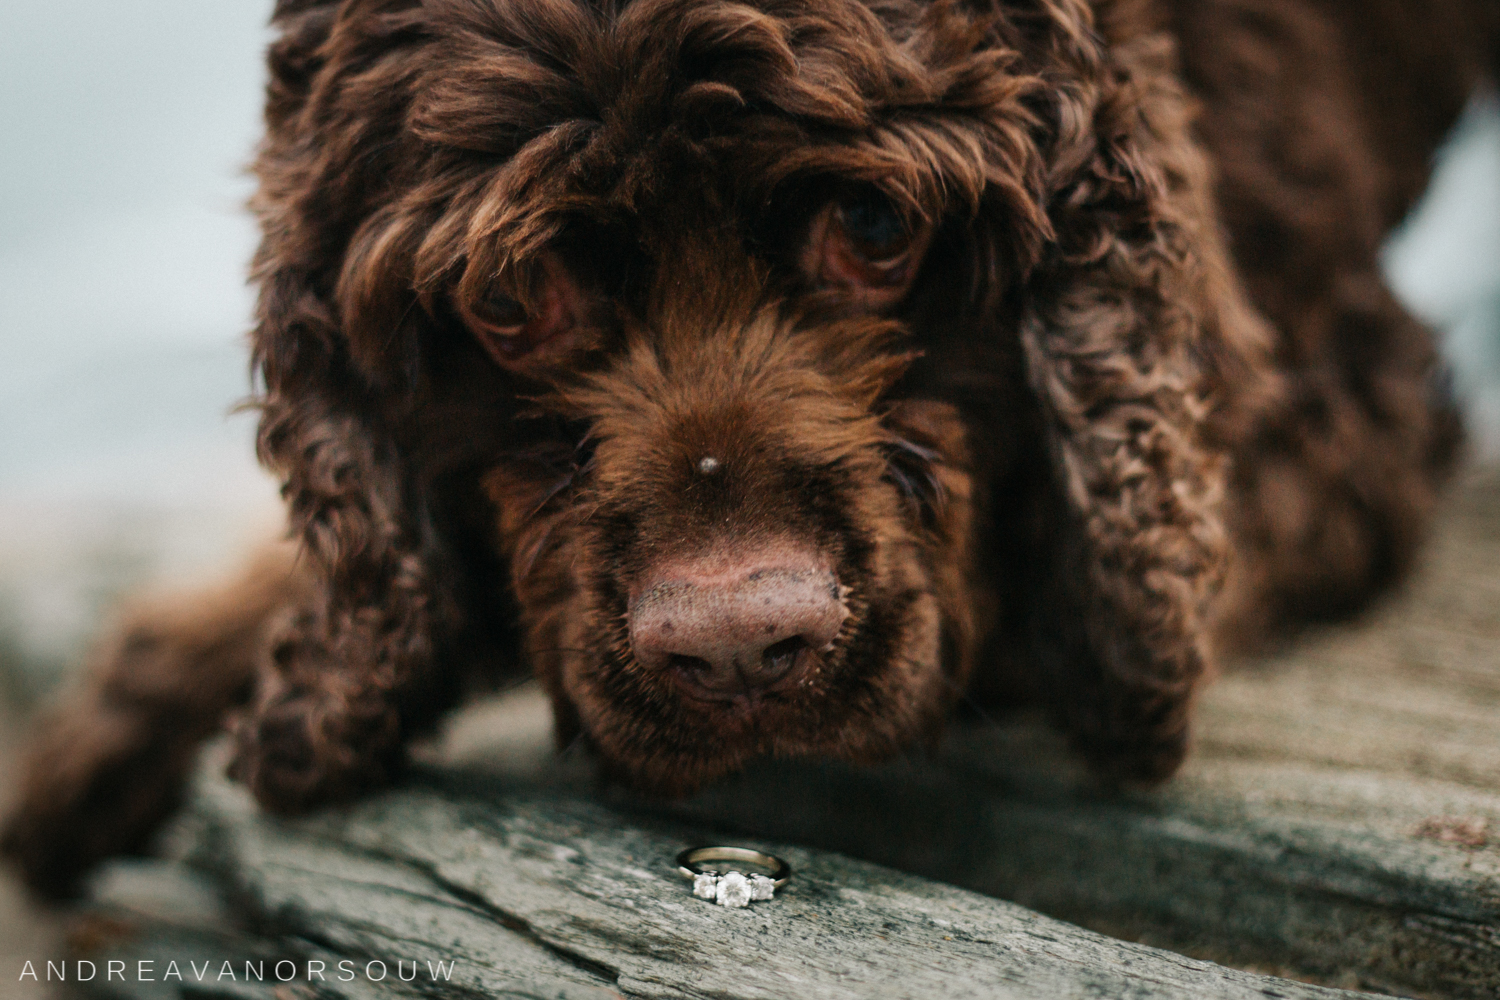 jamestown_rhode_island_Ri_engagement_session_photoshoot_wedding_outdoors_connecticut_wedding_new_england_photographer_ring_dog_puppy.jpg